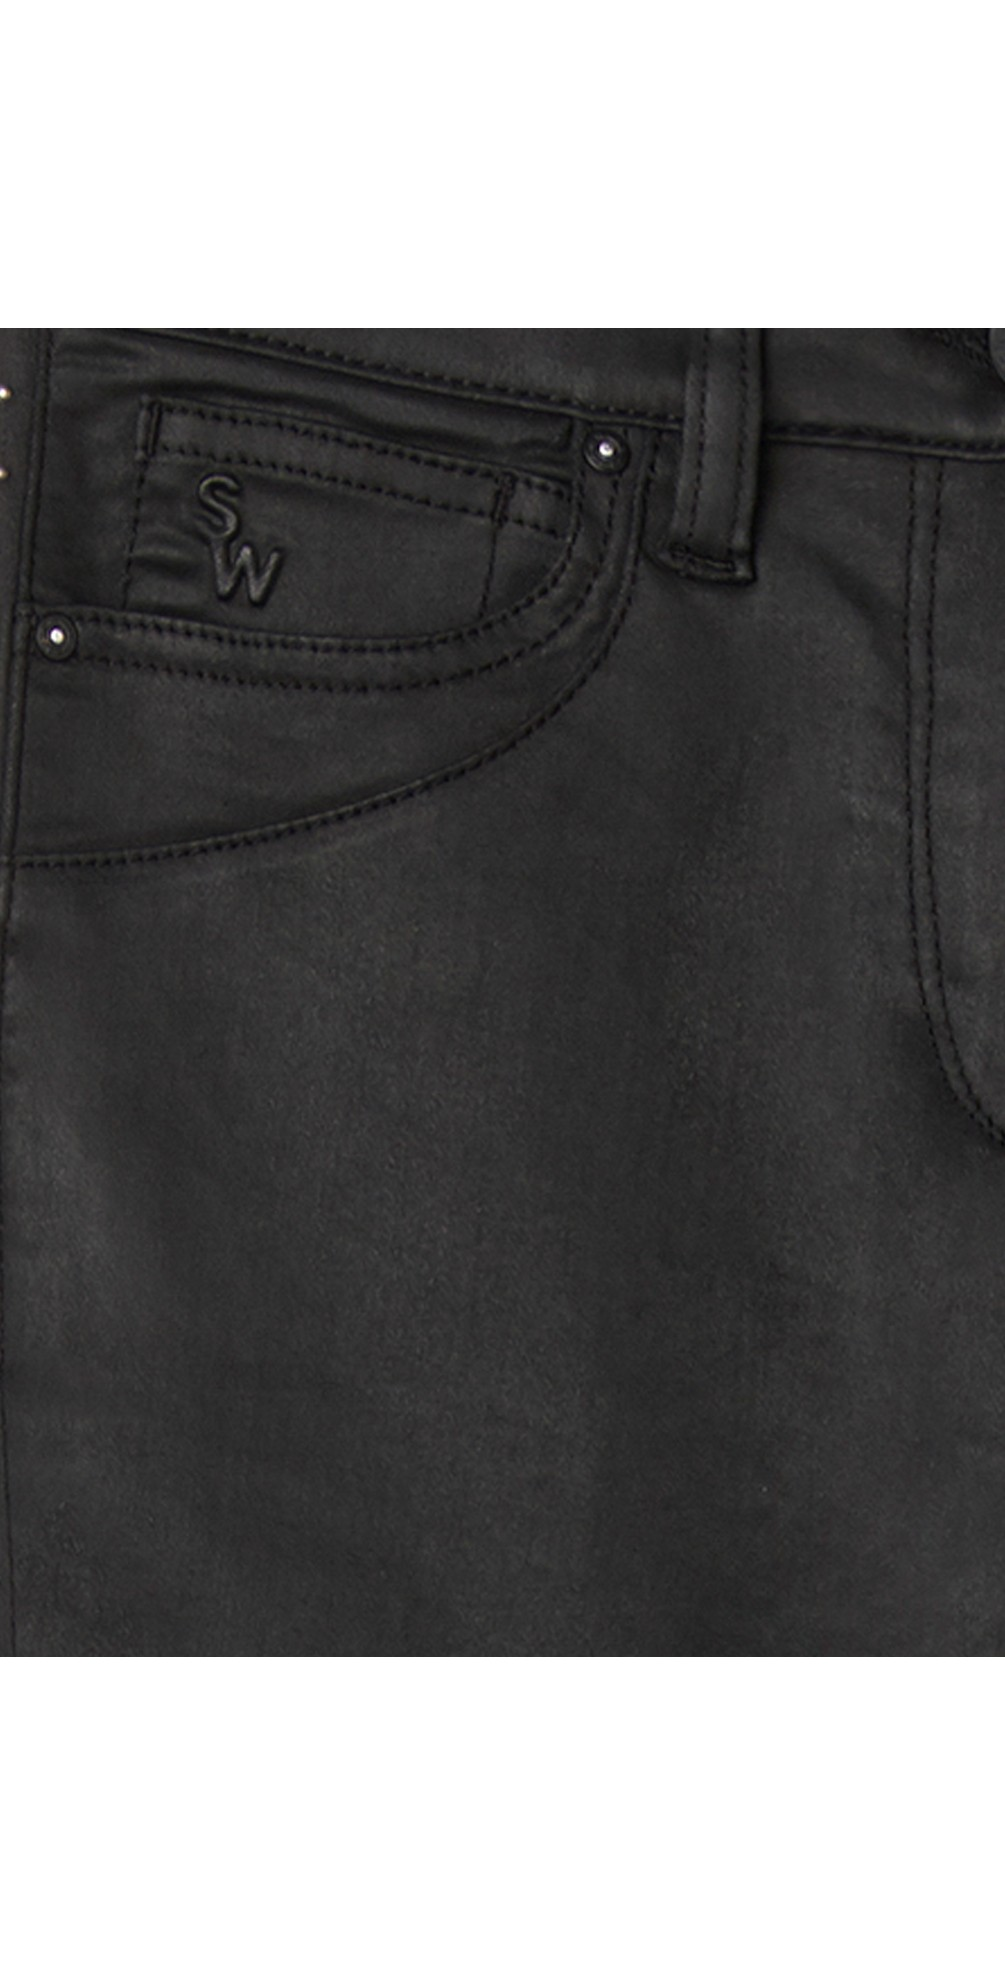 Slim Fit Stud Detail Trousers main image